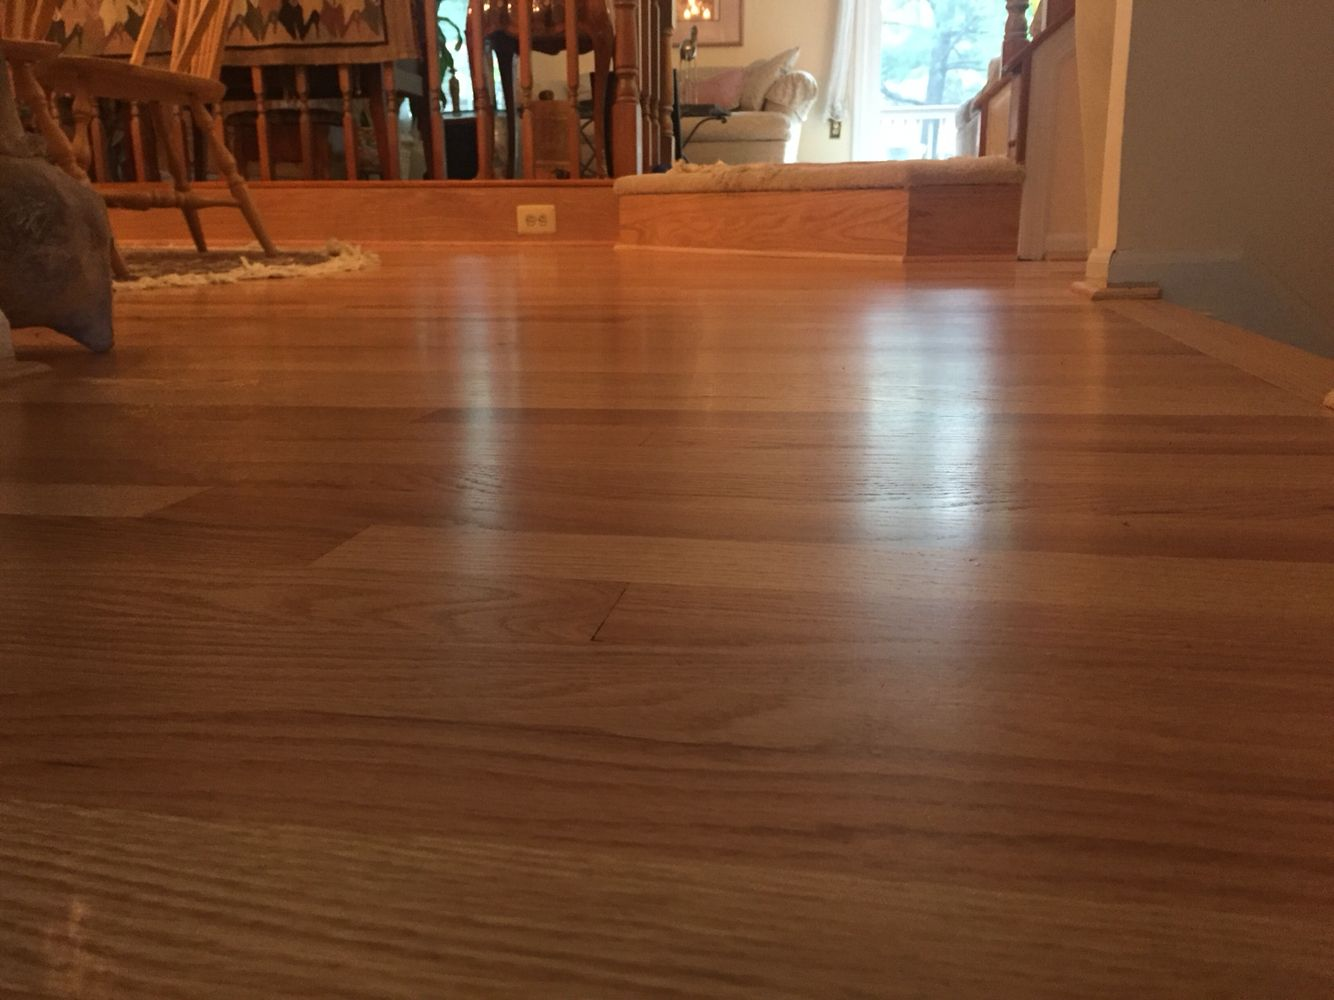 Impressive 5/16 unfinished red oak flooring on this